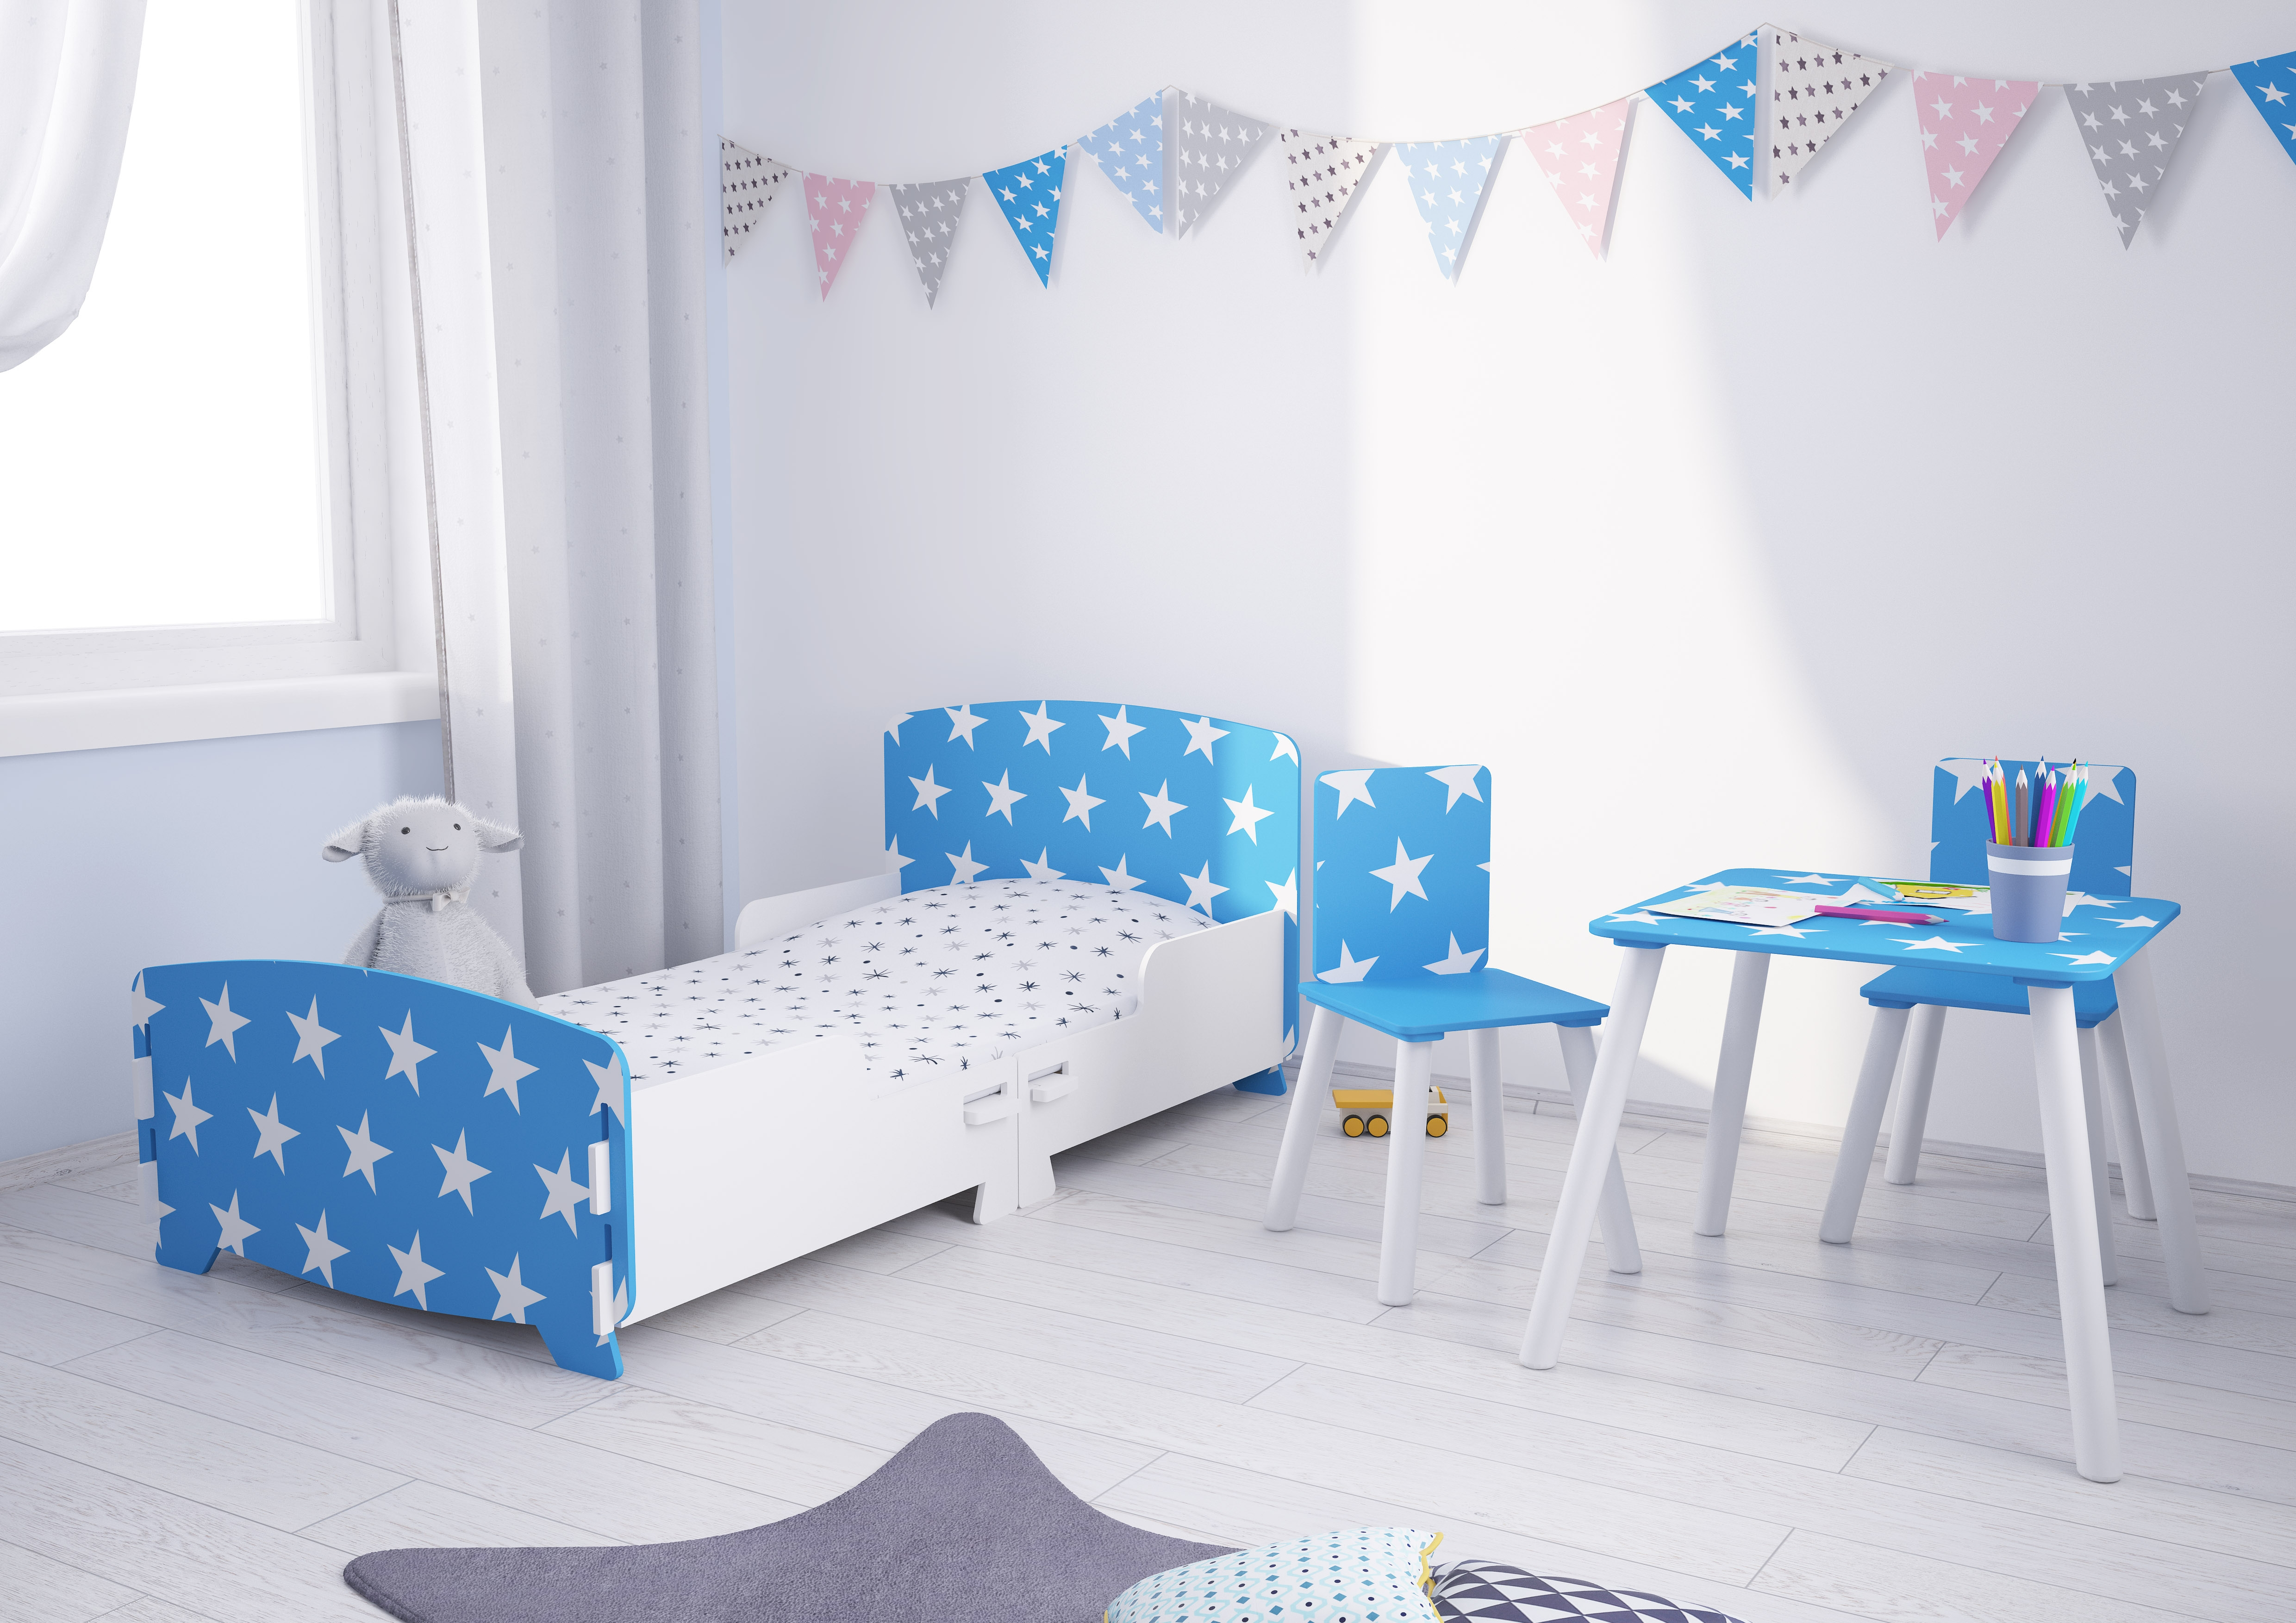 Star Blue and White Children's Bedroom Furniture Collection